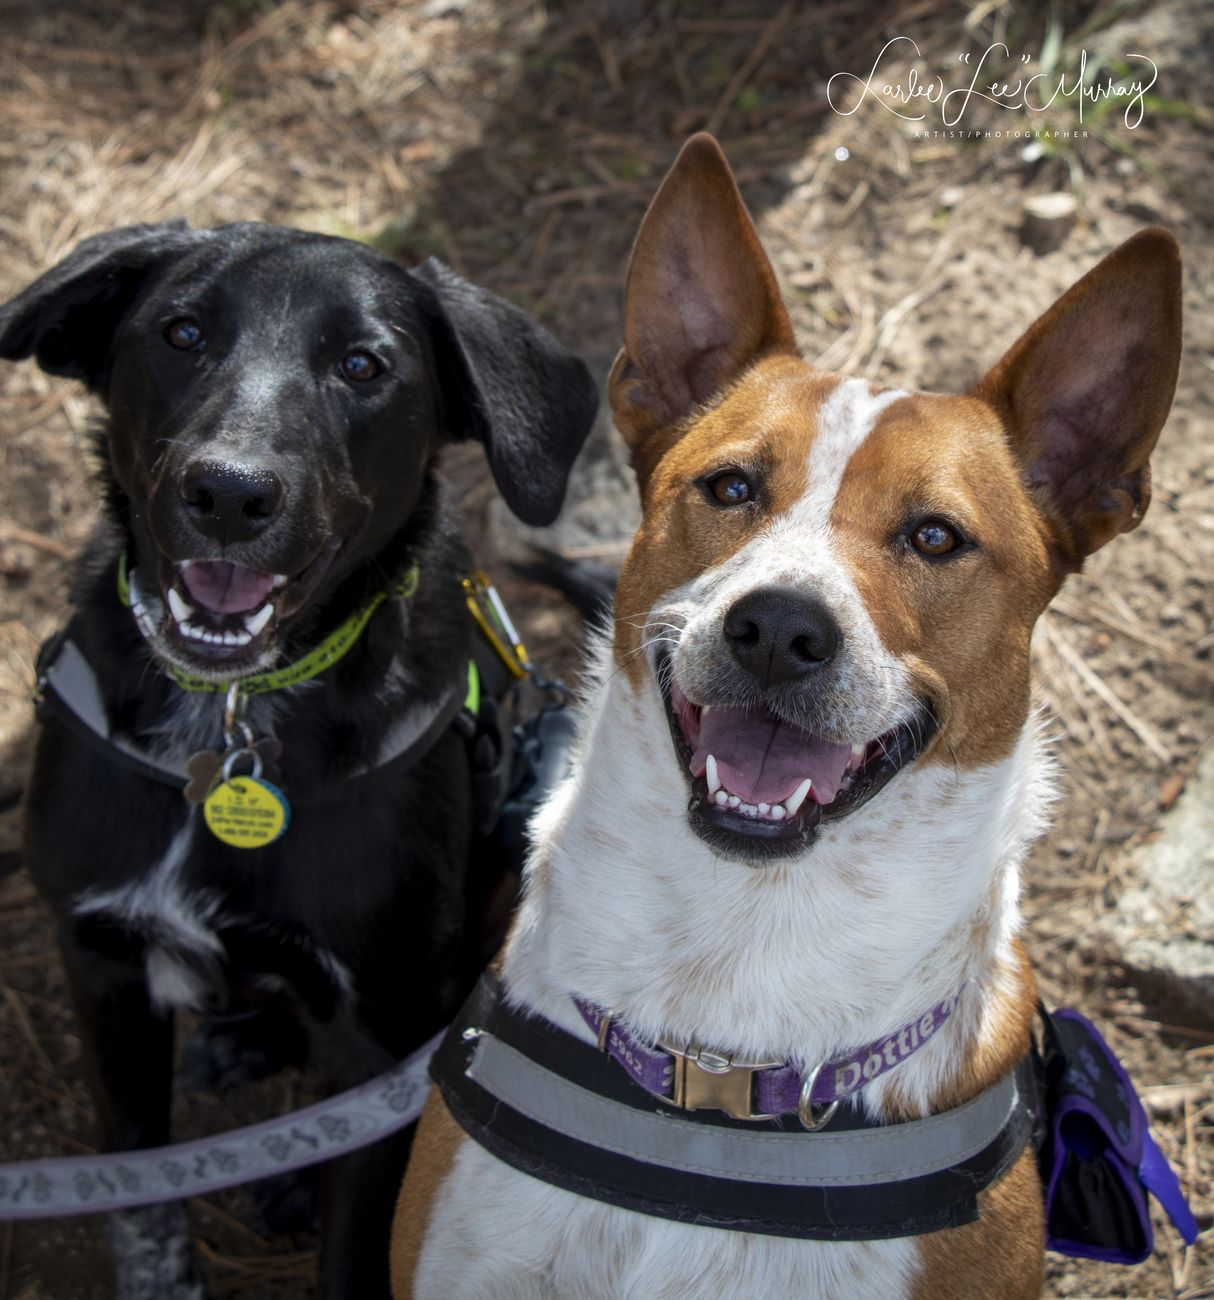 Hiking on Goldwater Lake today with the girls Dot - age 2 1/2 and Speckles 6 months (black) her 2nd hike. When asked if they like hiking this was their response, smiles! ..they are both rescues and permanently have homes with us.